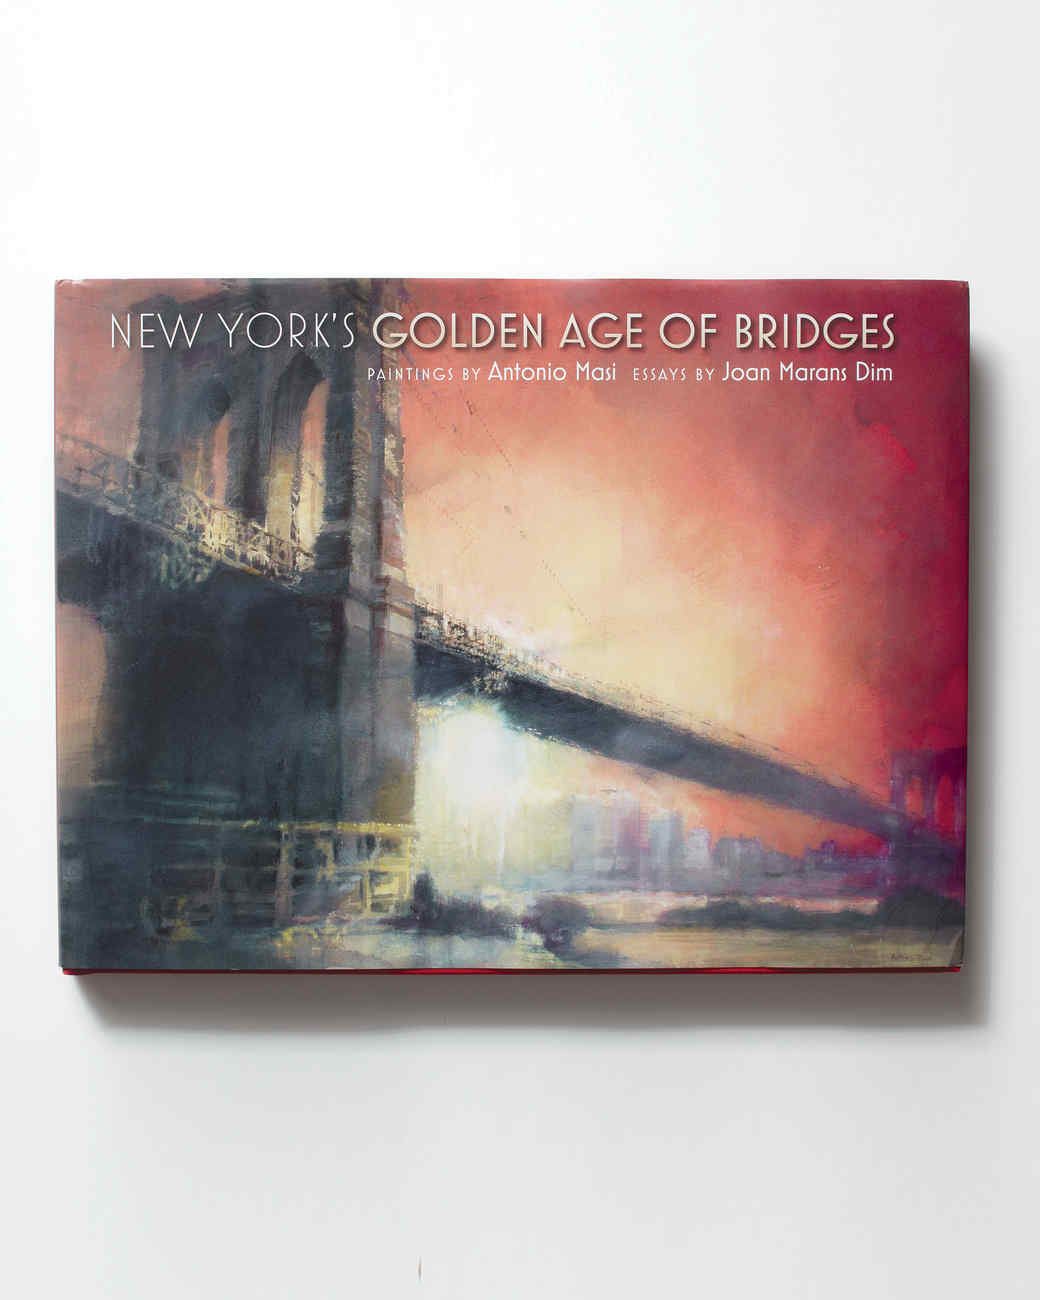 gift-guide-golden-age-bridges-m107904.jpg